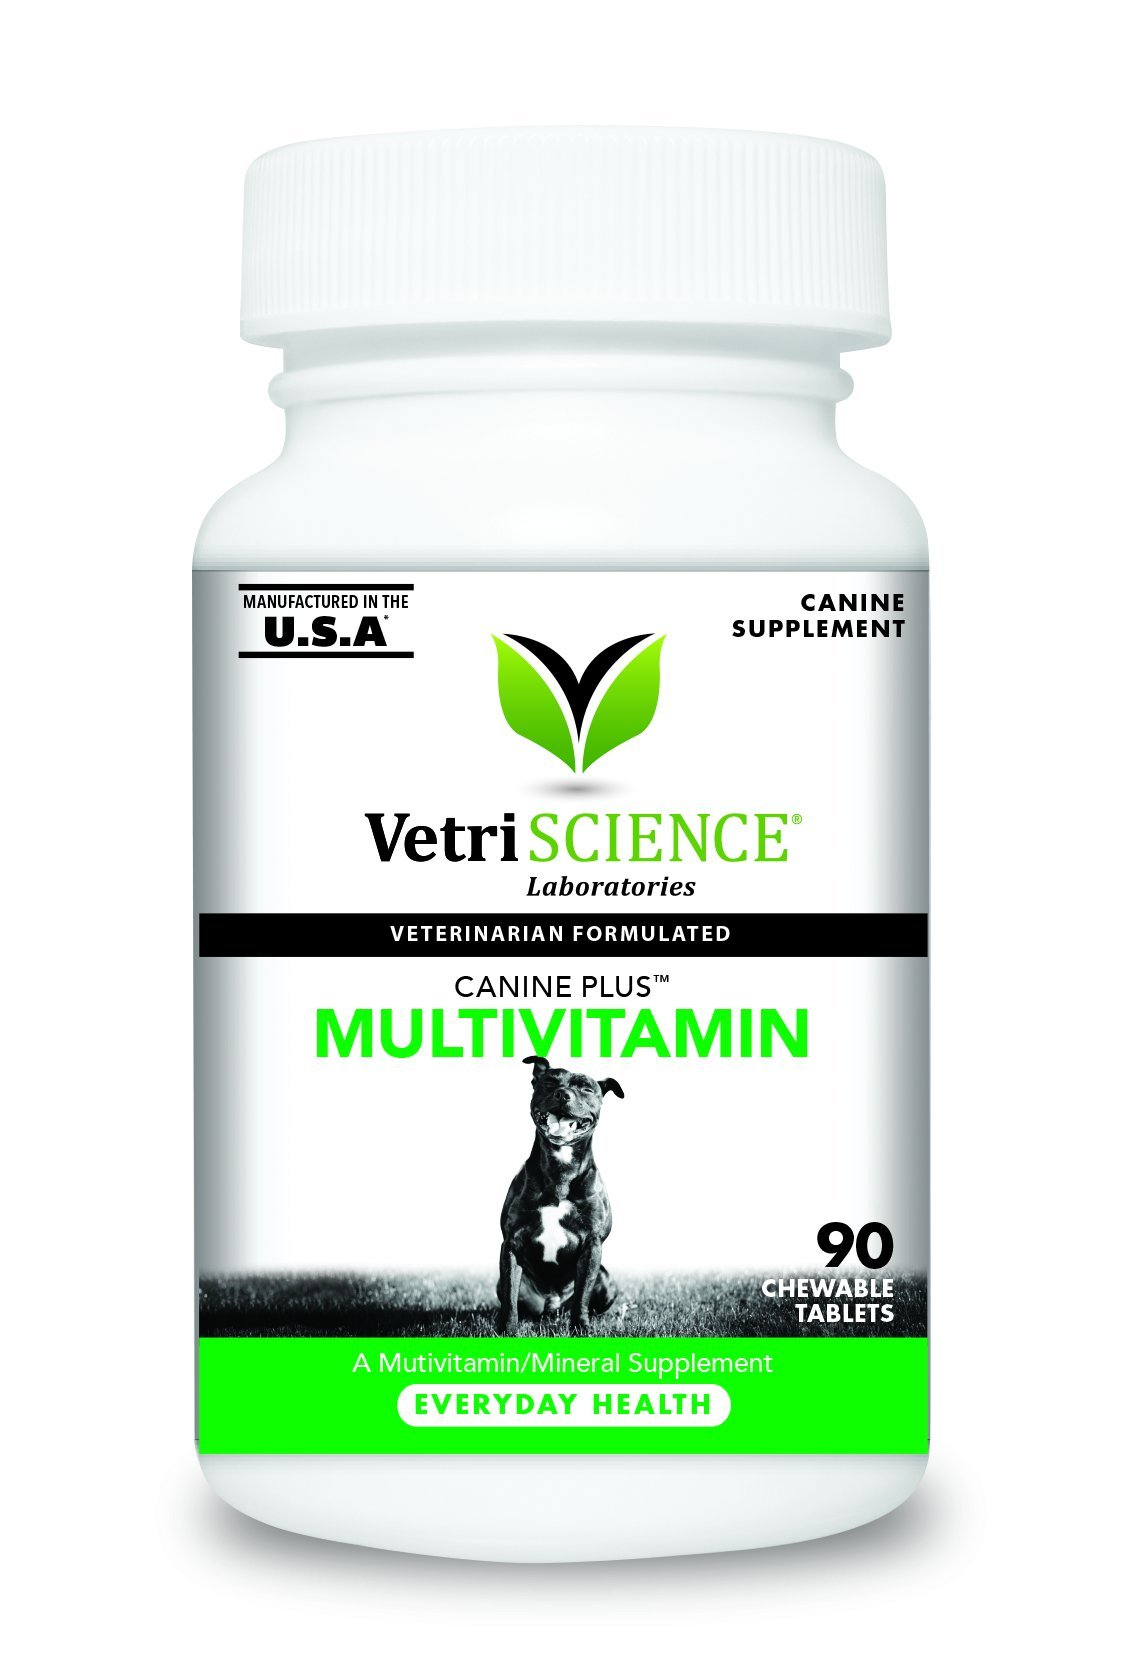 VetriScience Laboratories - Canine Plus MultiVitamin for Dogs, 90 Chewable Tablets by VetriScience Laboratories